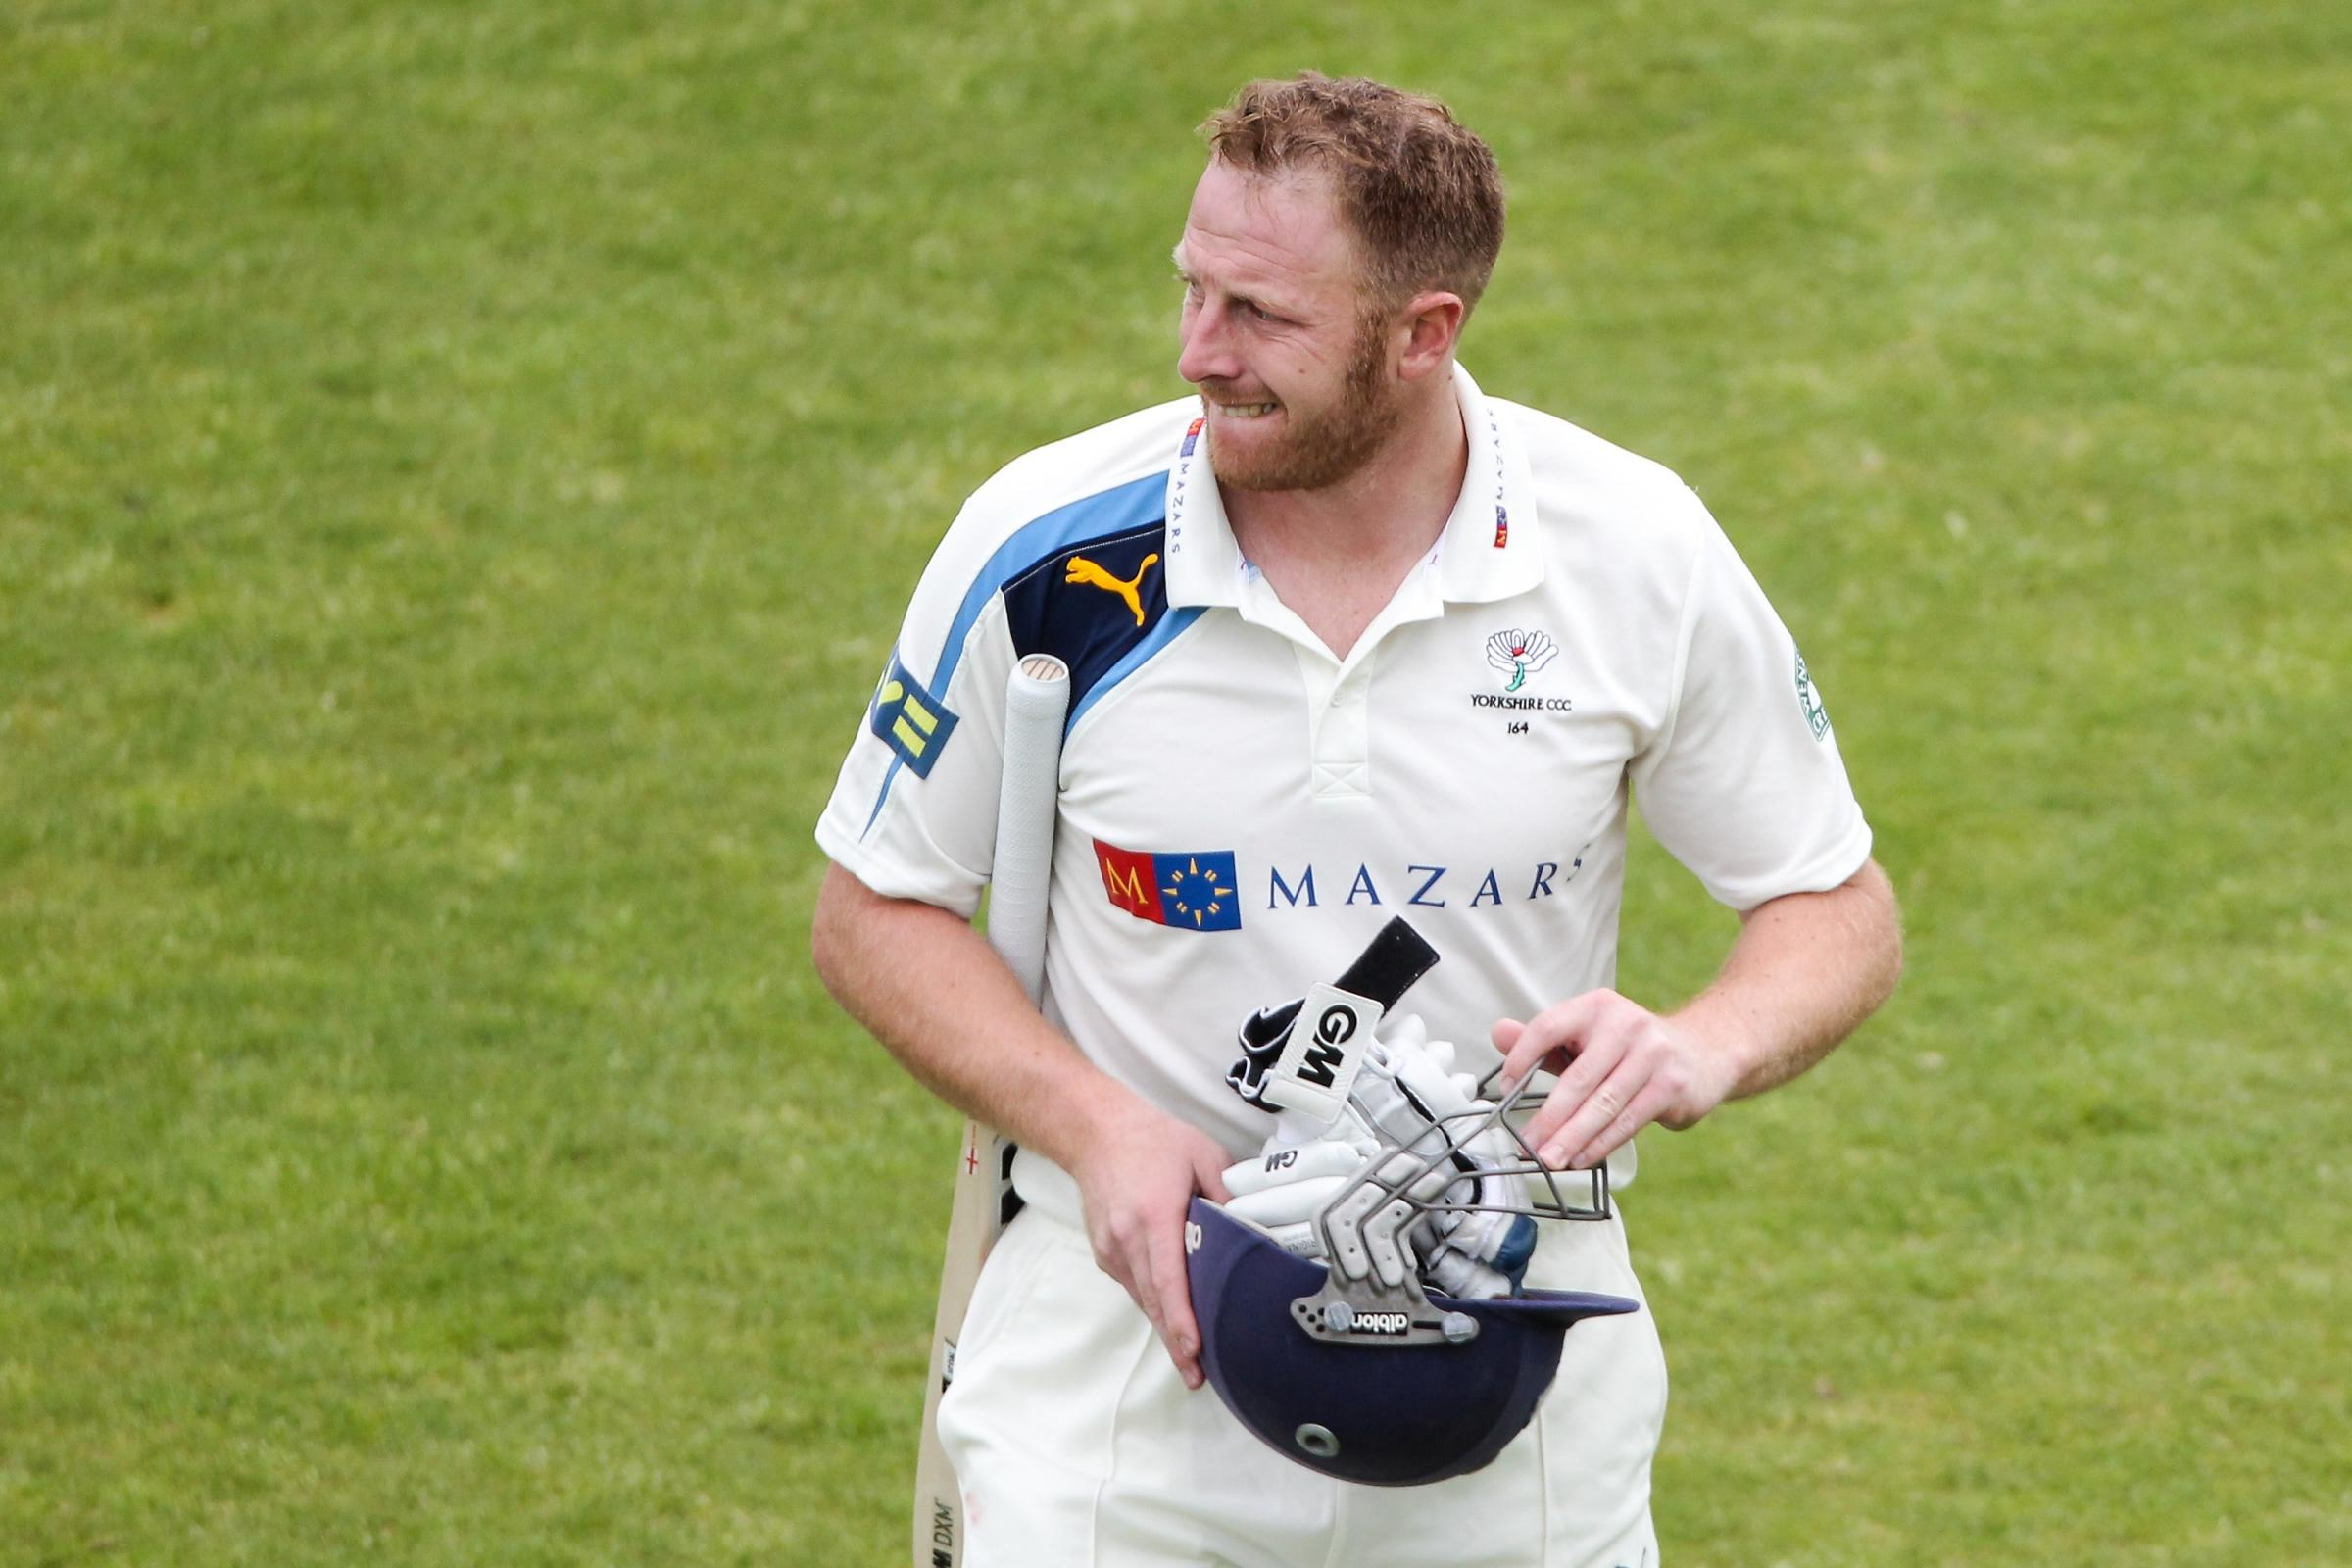 EYES ON THE PRIZES: Yorkshire skipper Andrew Gale has success in his sights for the White Rose ranks. Picture: Alex Whitehead/swix.com